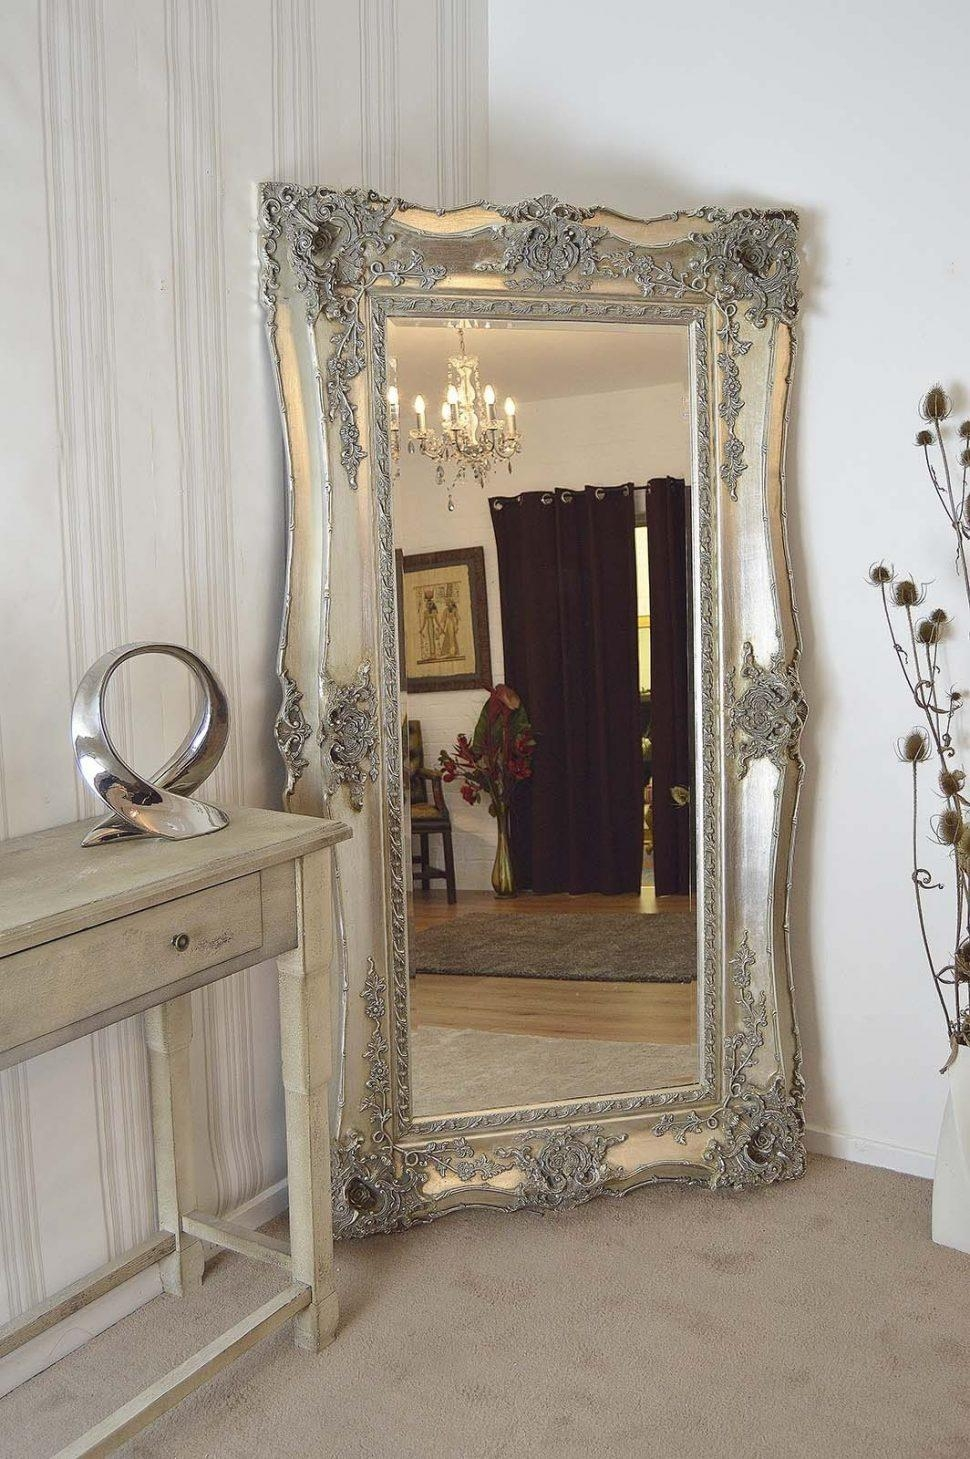 Bedroom Furniture : Large Gold Mirror Free Standing Mirror Wooden Inside Dressing Mirrors Free Standing (Image 4 of 20)